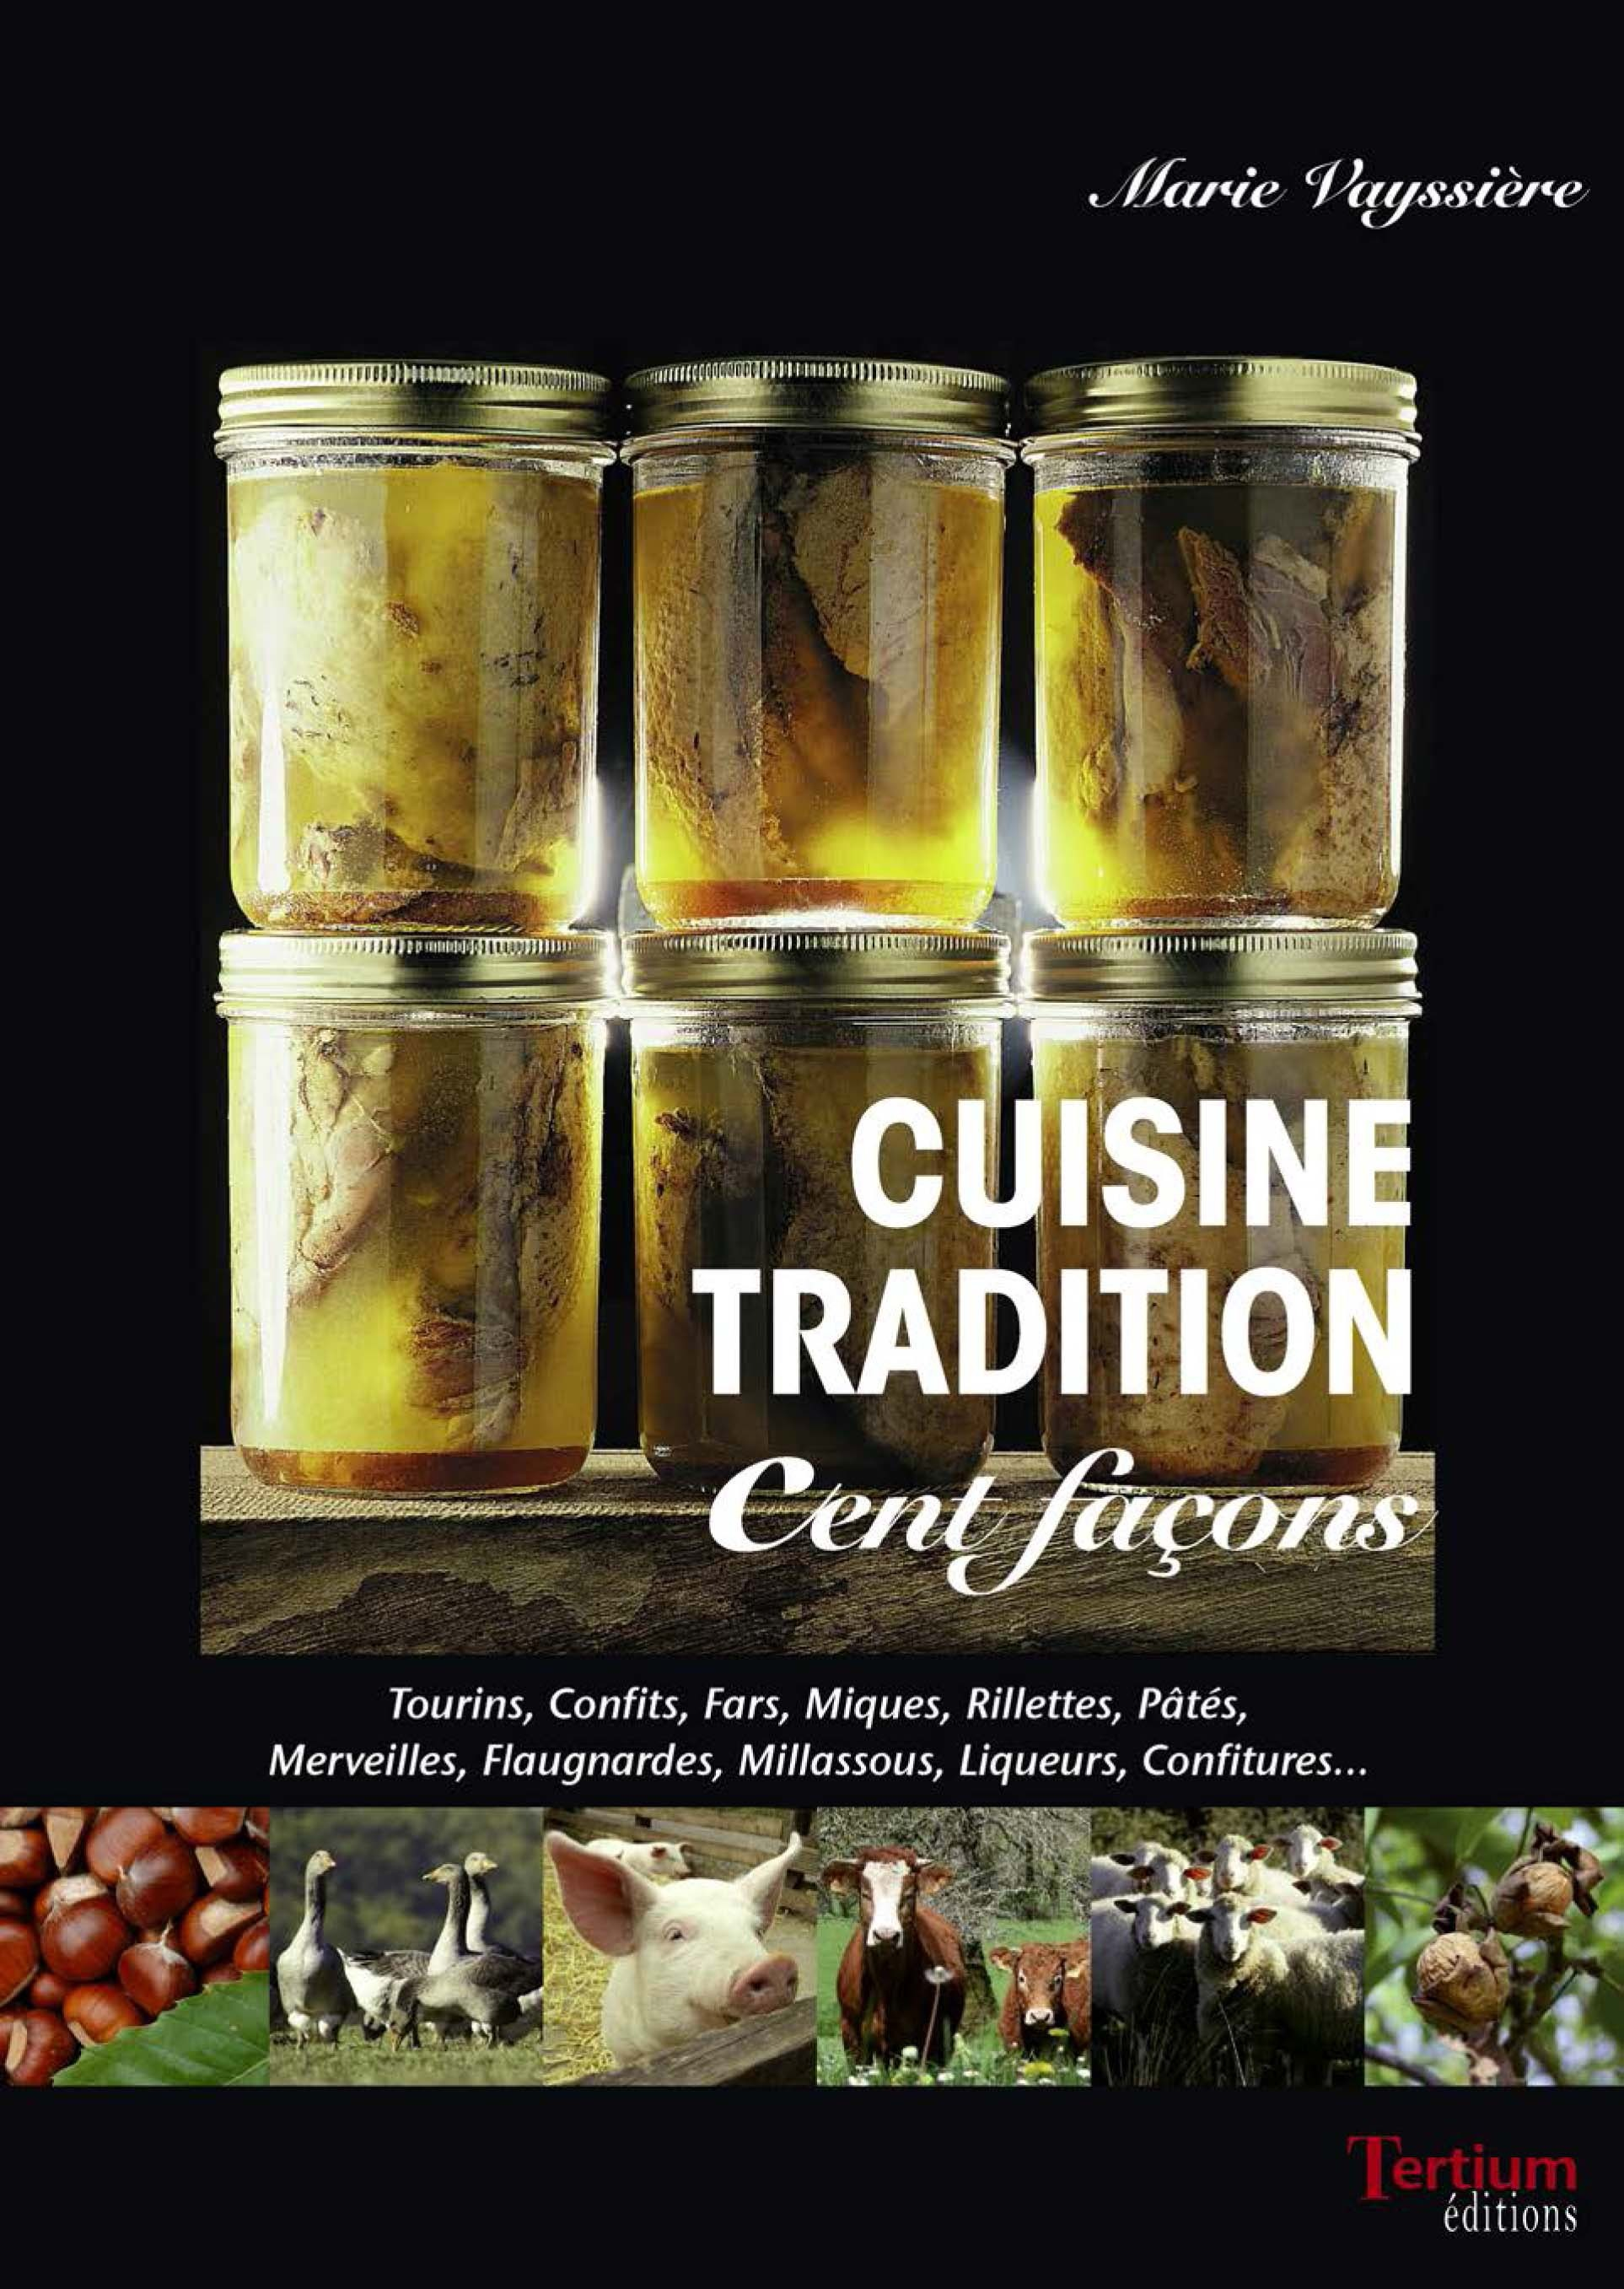 Cuisine tradition cent façons  - Marie Vayssiere